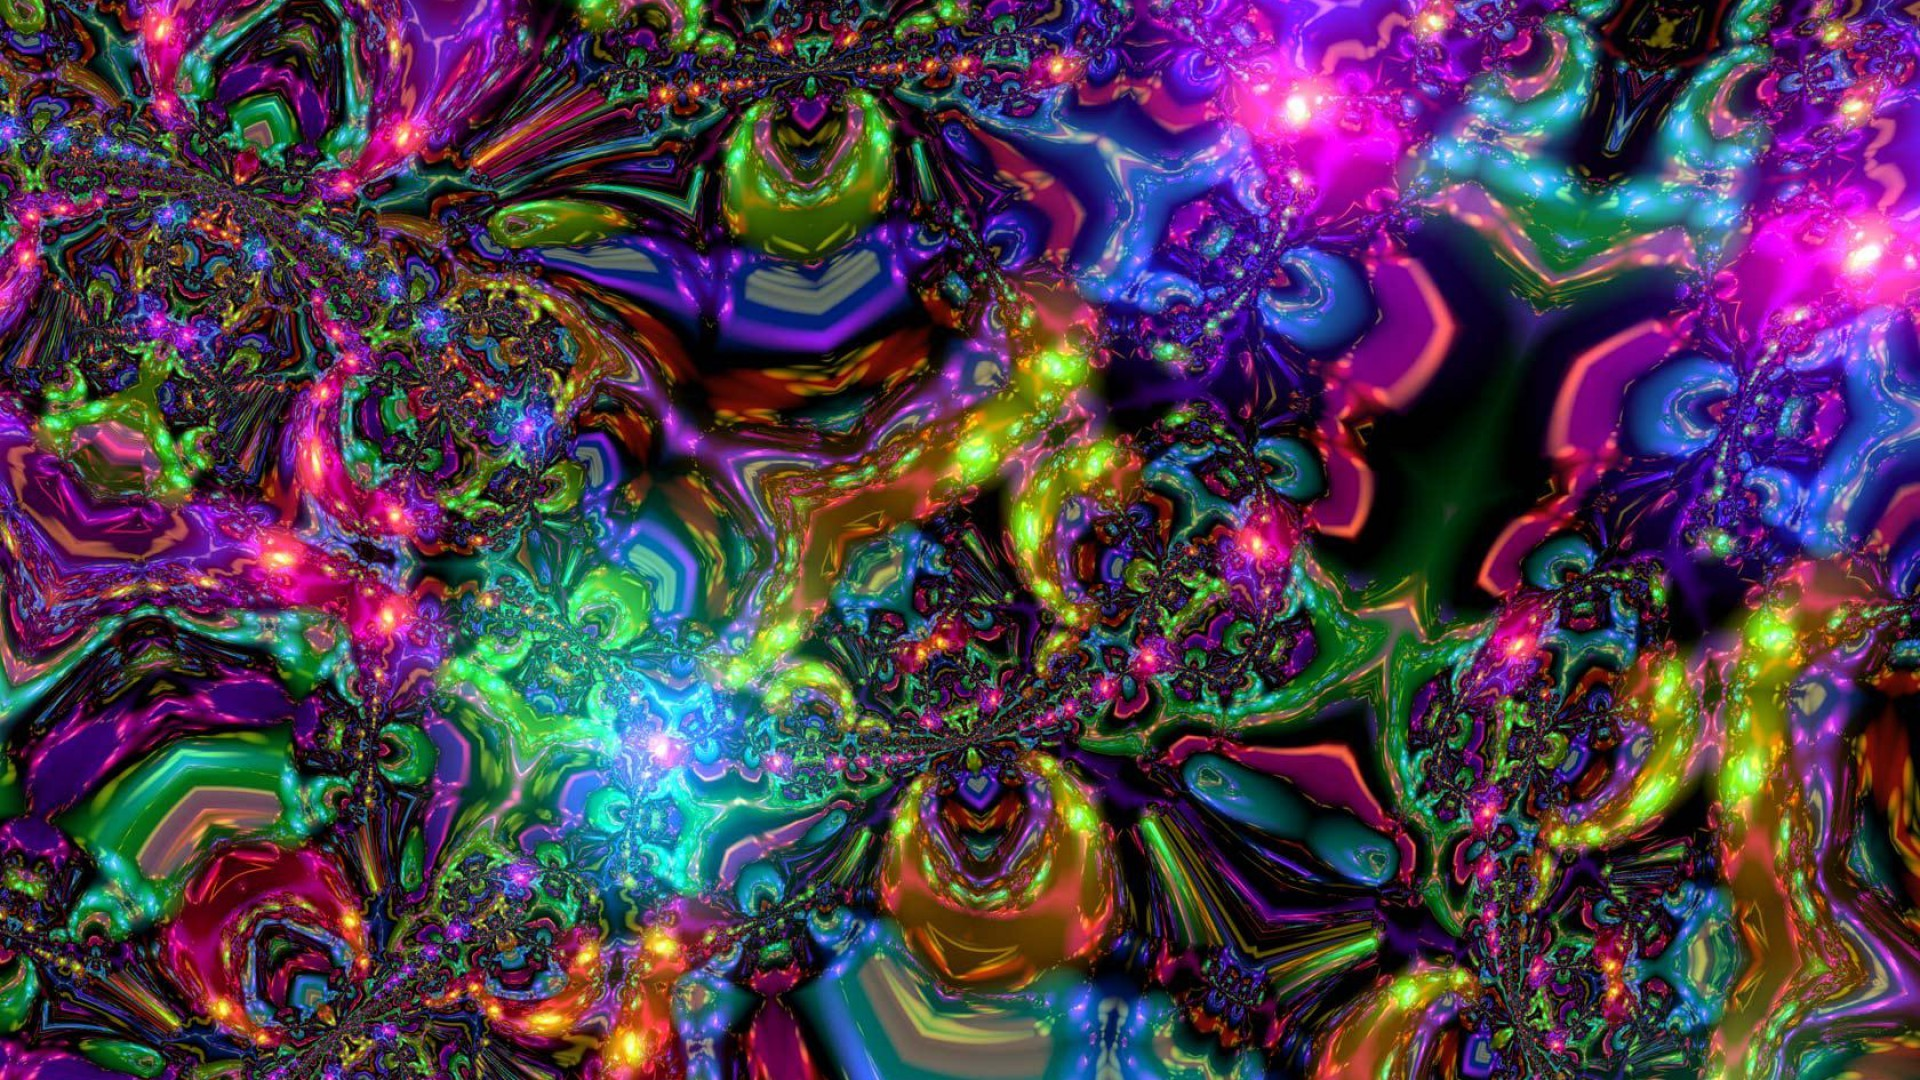 Res: 1920x1080, 0 abstract trippy psychedelic wallpapers hd hd wallpapers download hippie  wallpaper of 3